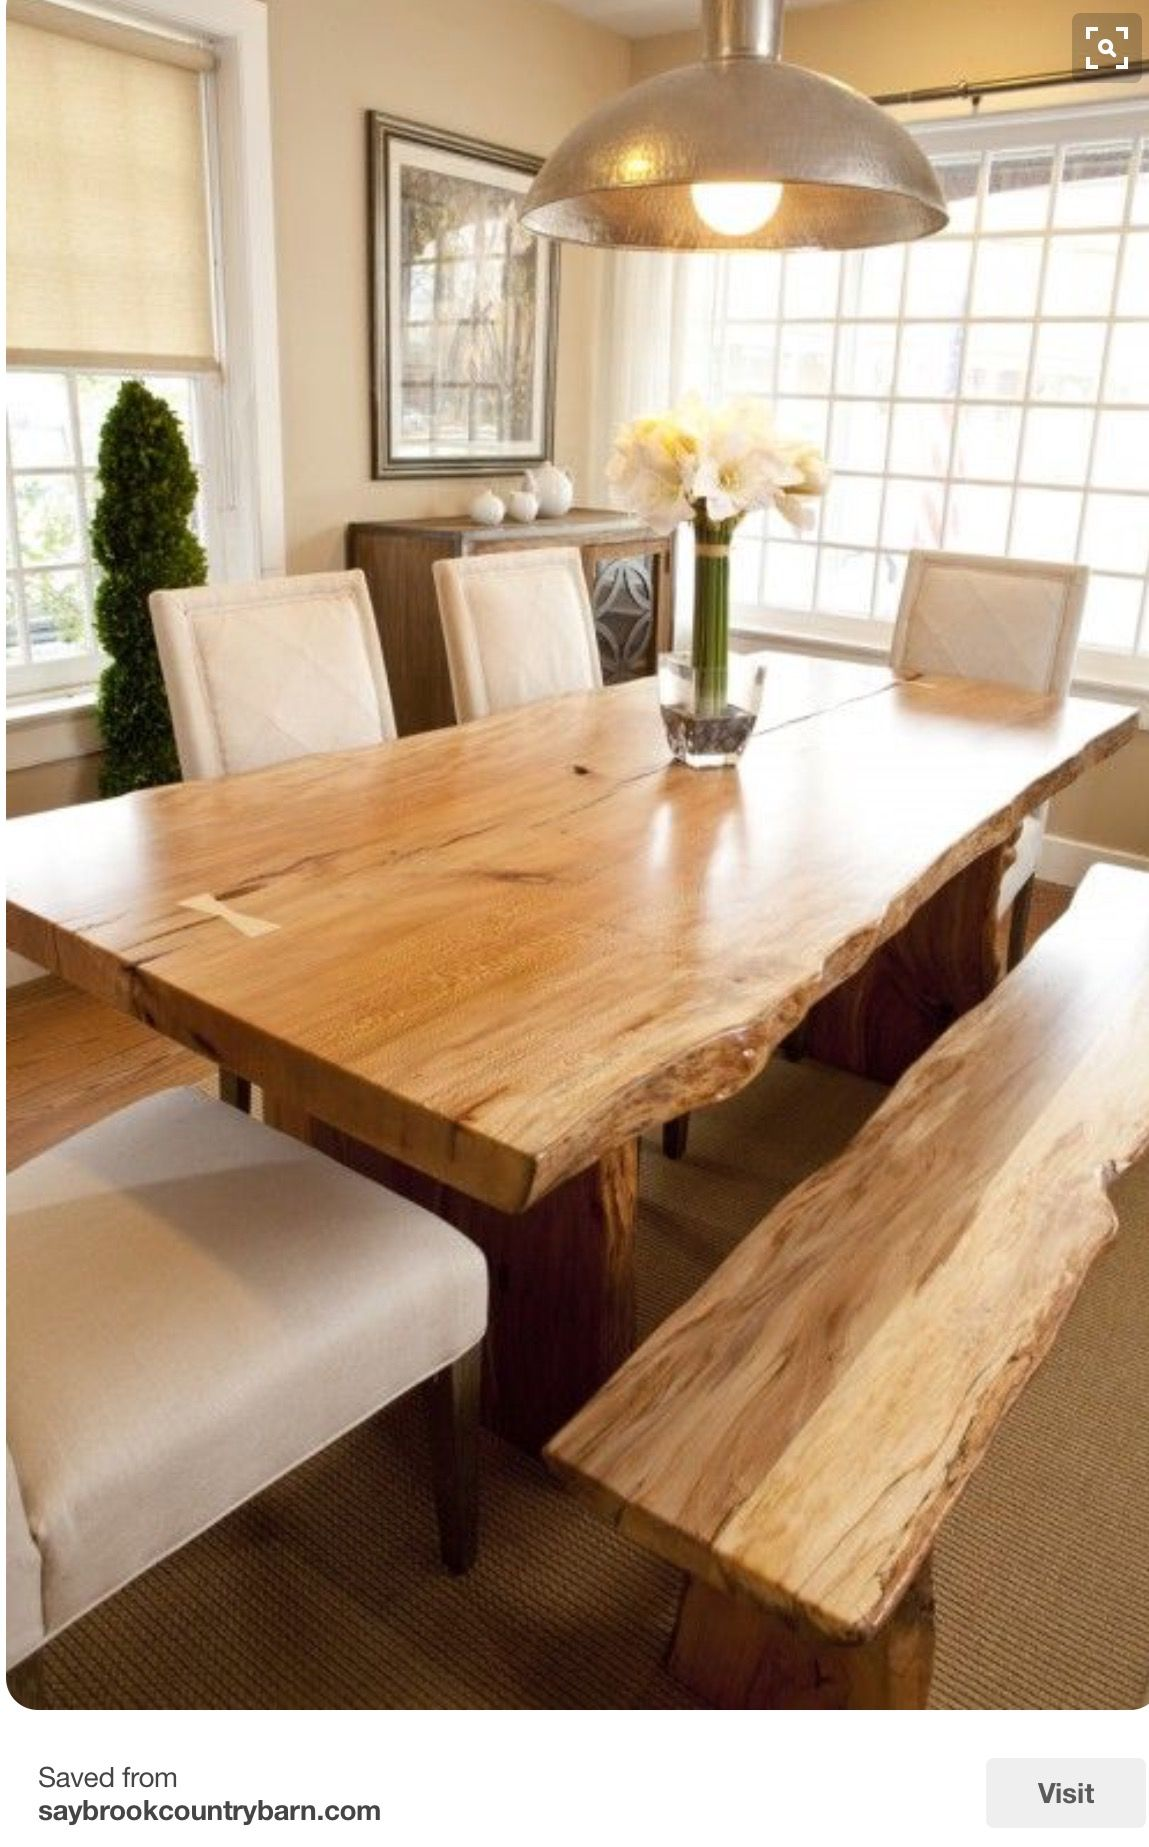 Modern rustic dining room table  Pin by rodi tzani on Design ideas  Pinterest  Tables Room and